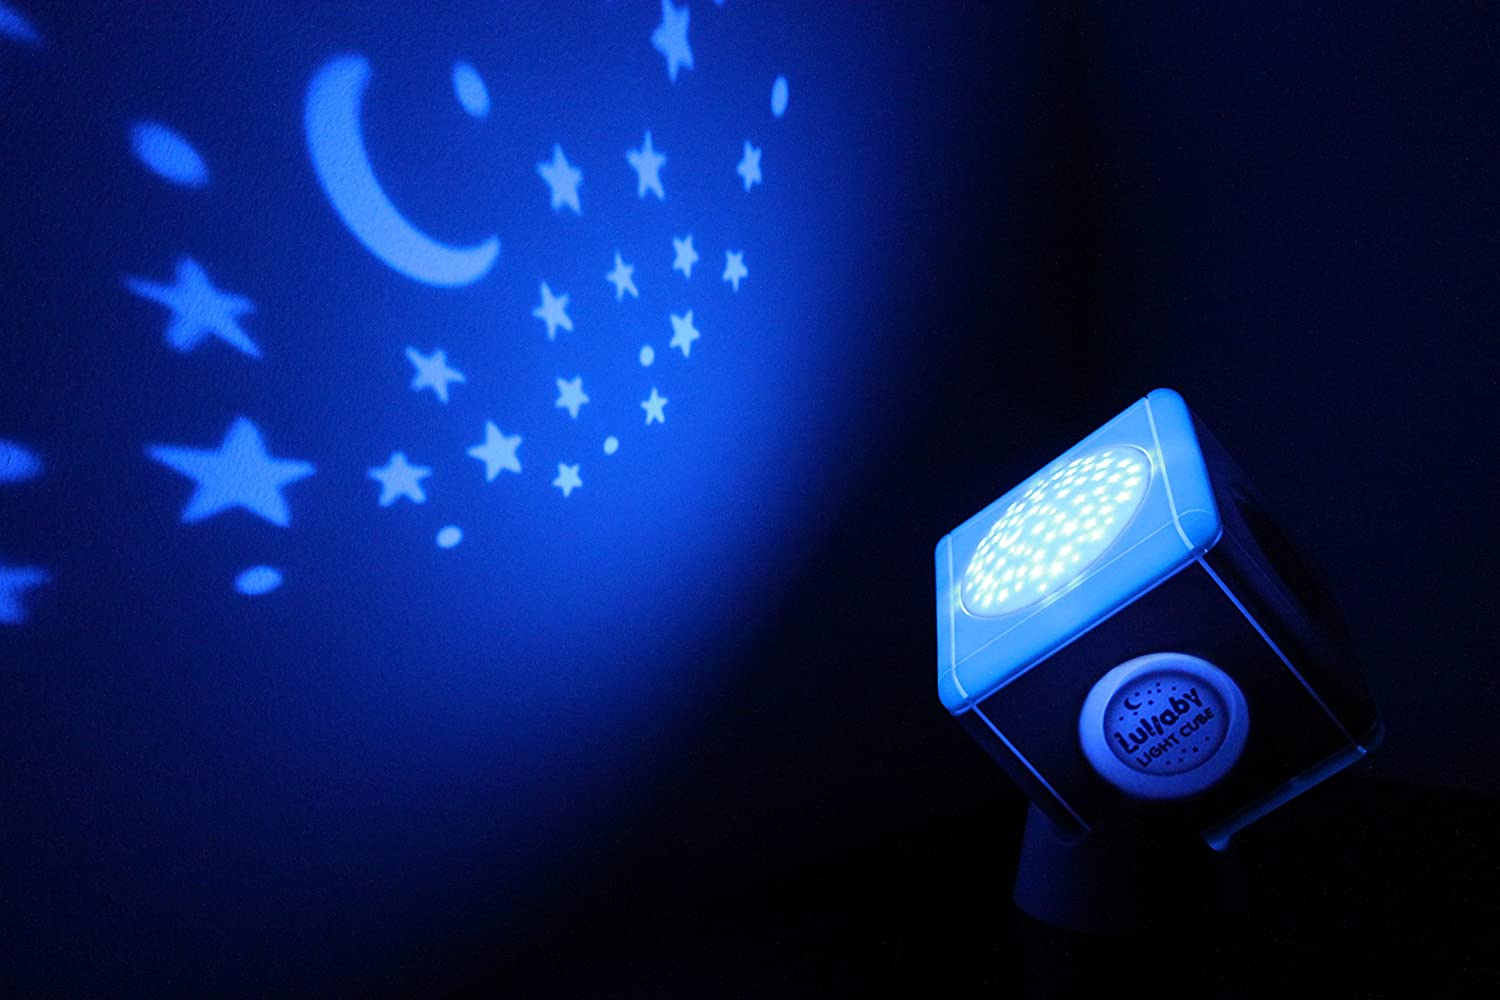 Baby Star Light Projector Star Projector Night Light Reviews